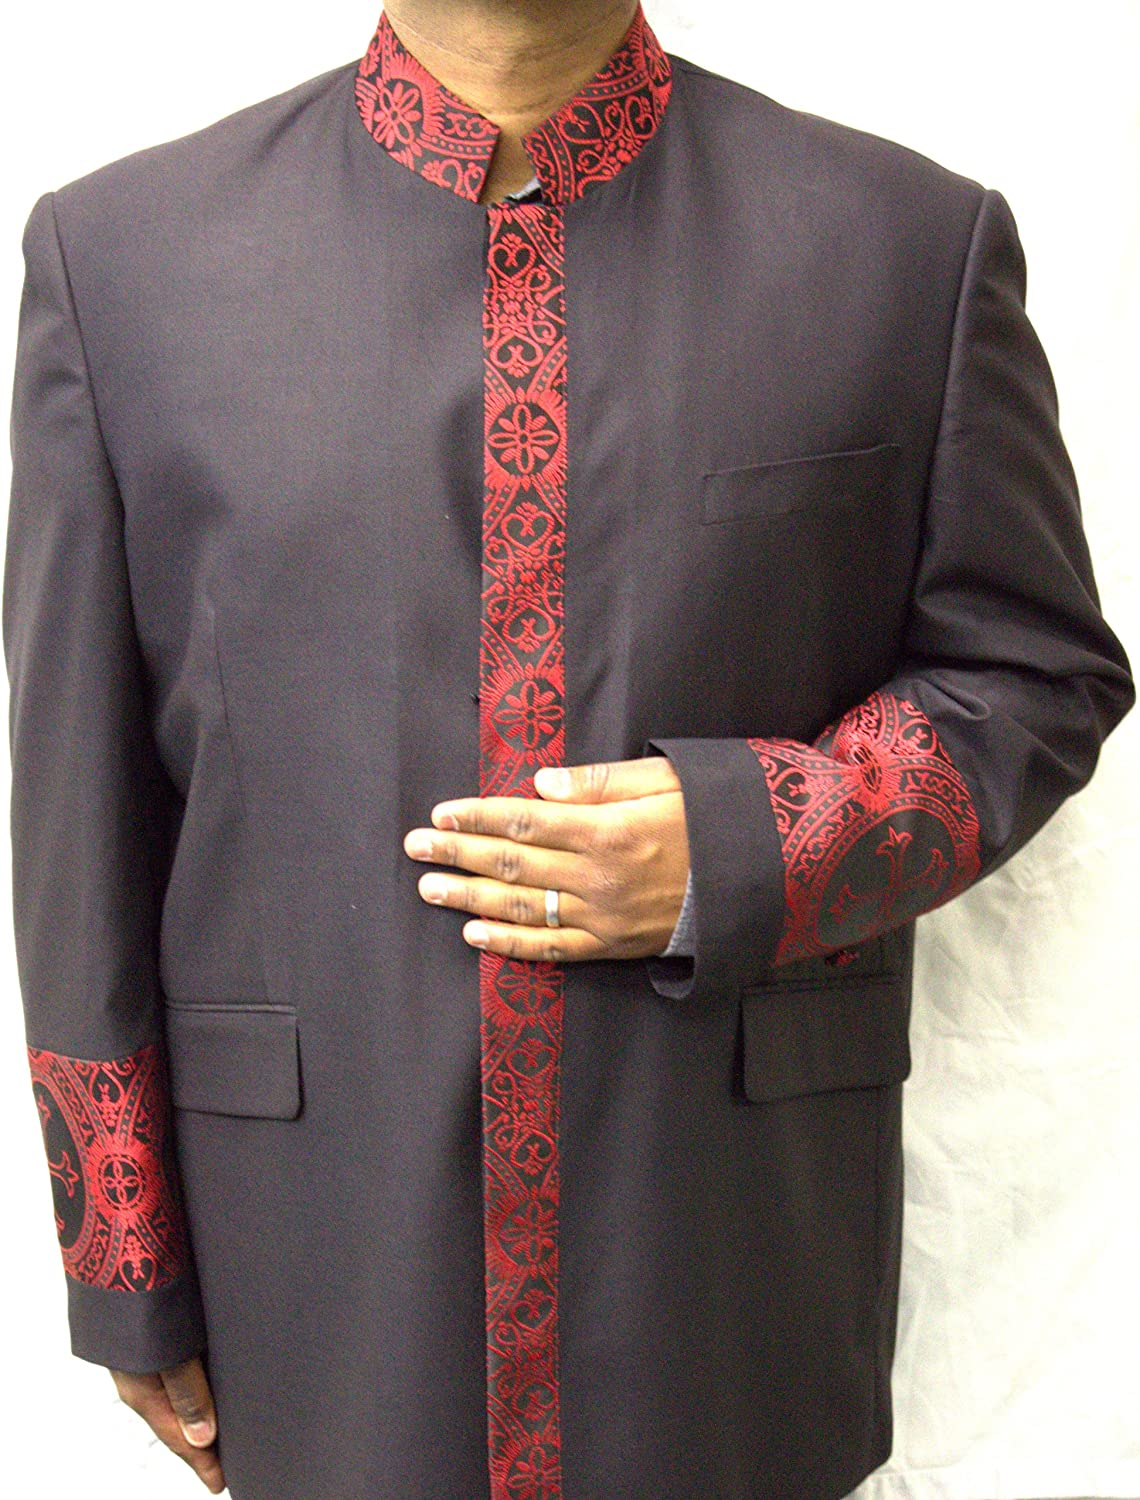 Two Piece Black Clergy Suit with Vibrant Red Embroidery